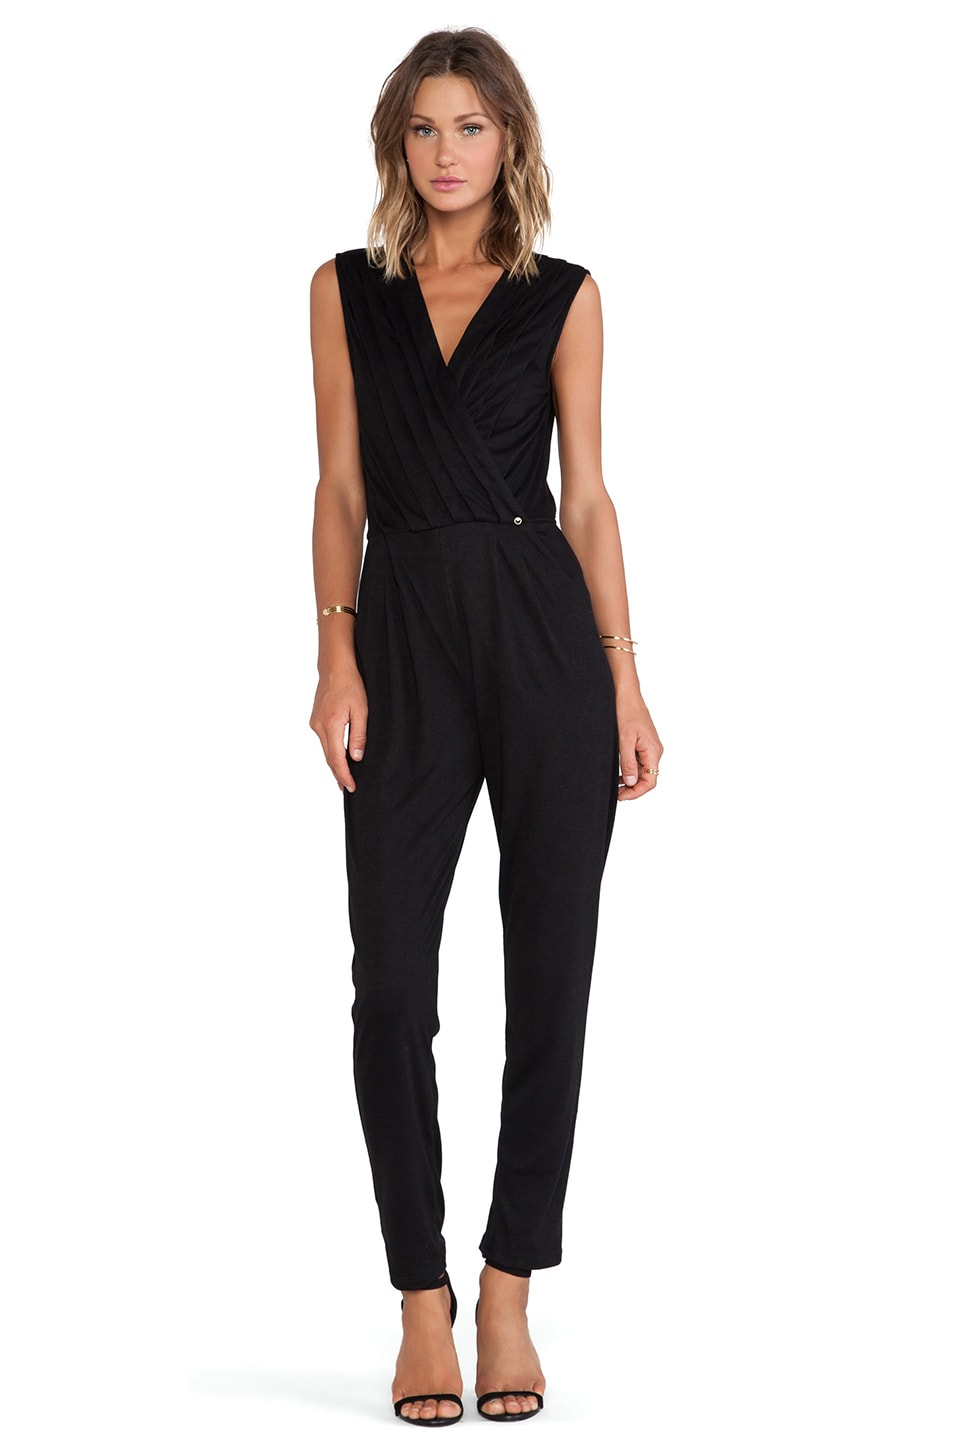 Greylin Marcia Jumpsuit in Black